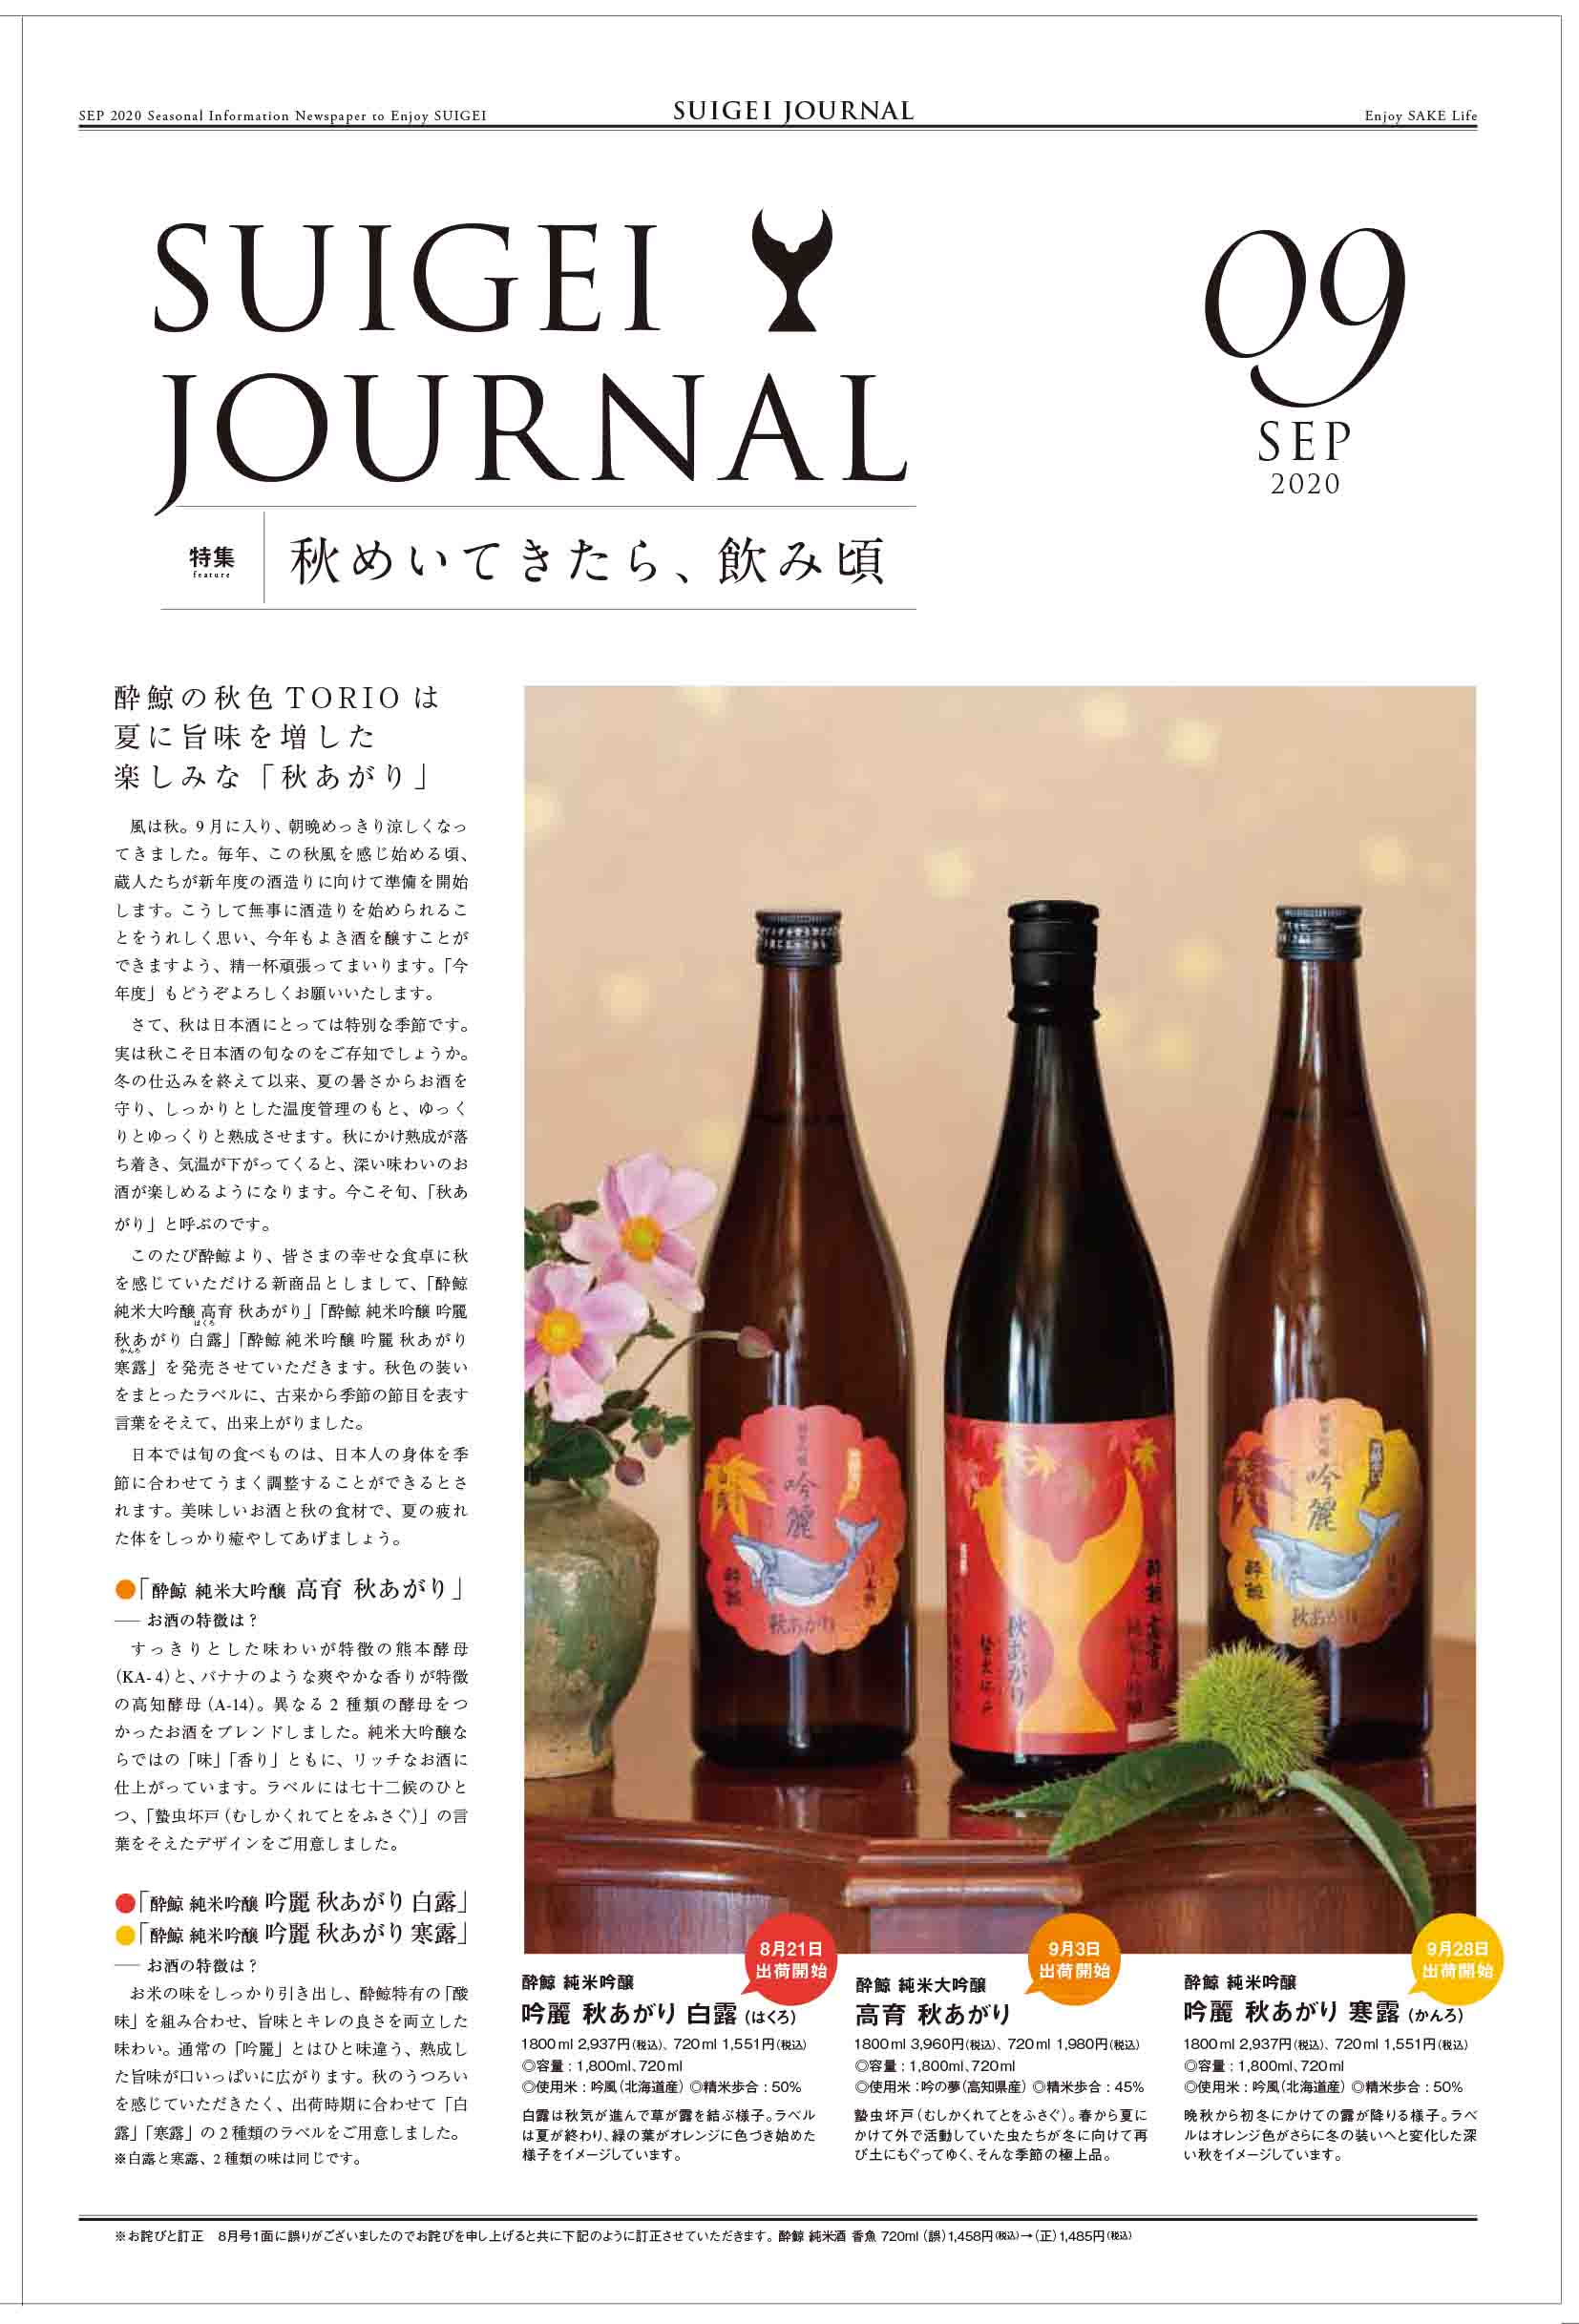 SUIGEI JOURNAL 2020年9月号 表1